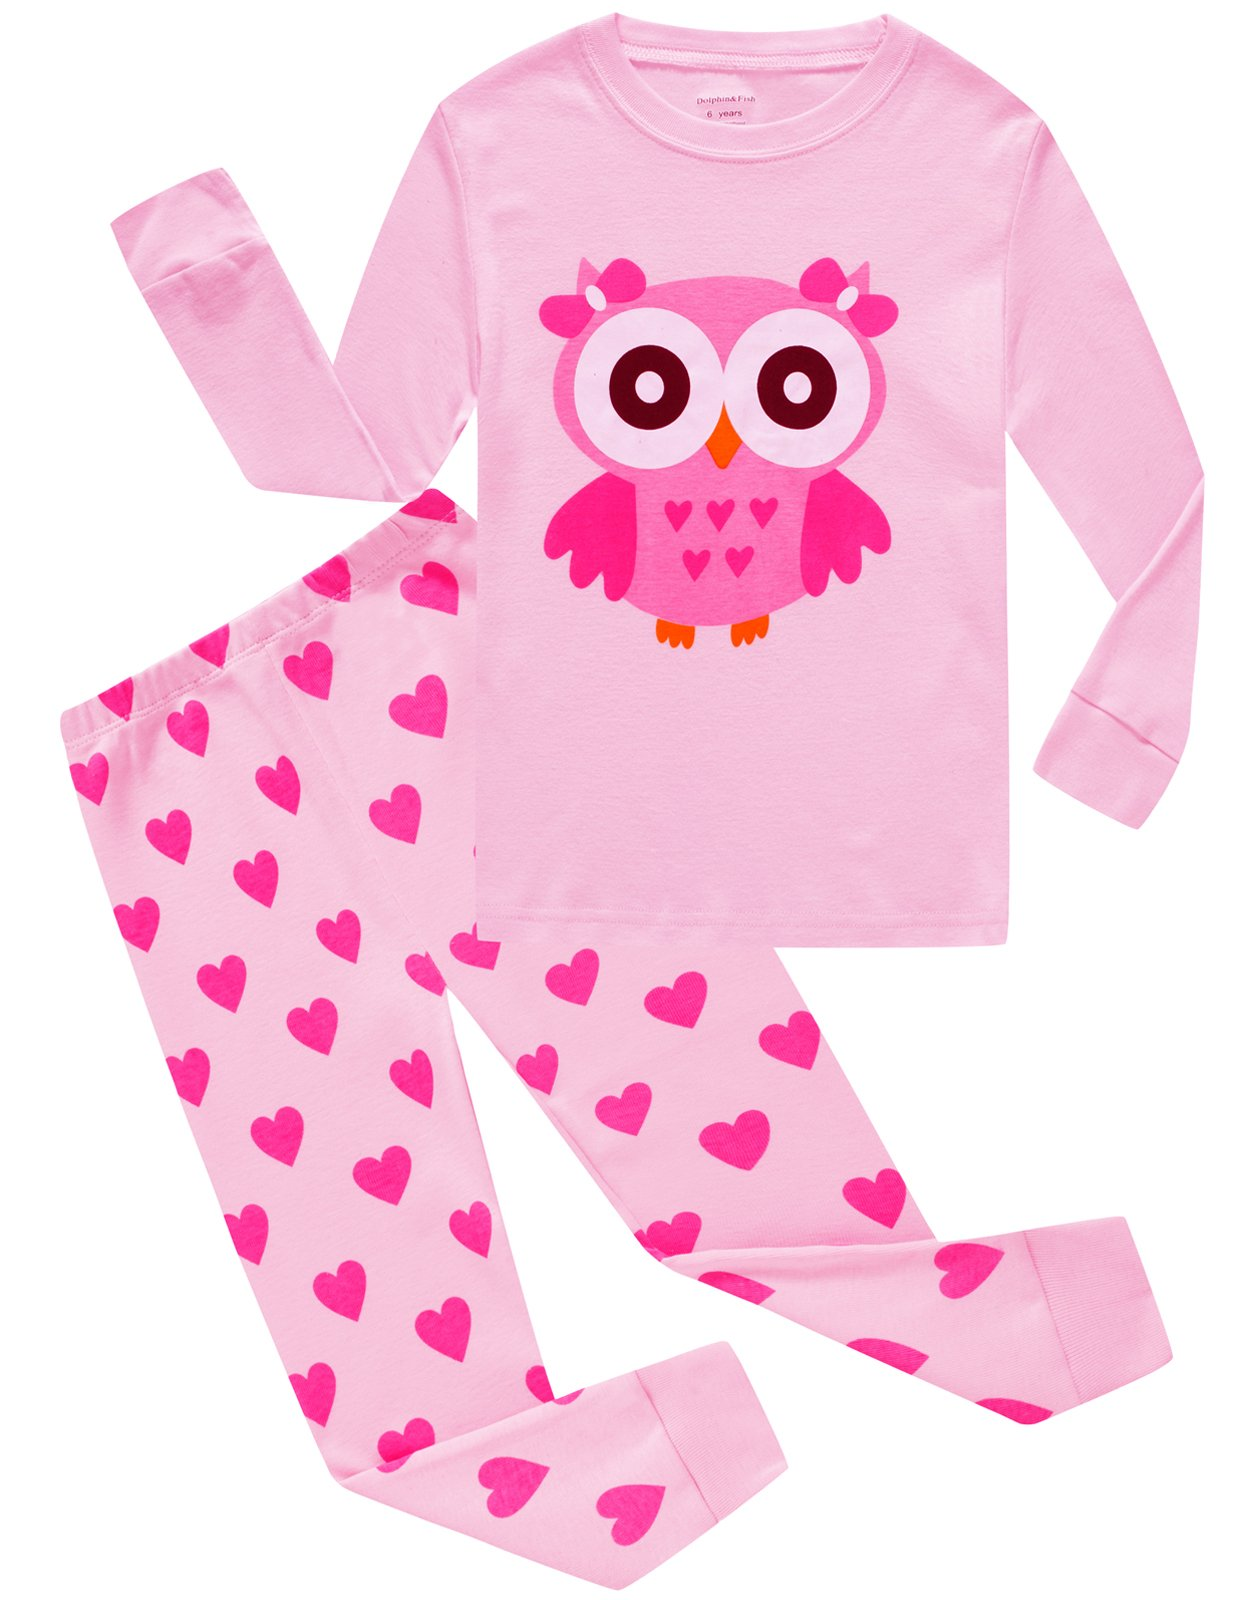 Image of Cotton Pink Cartoon Owl Pajamas for Girls - See More Designs